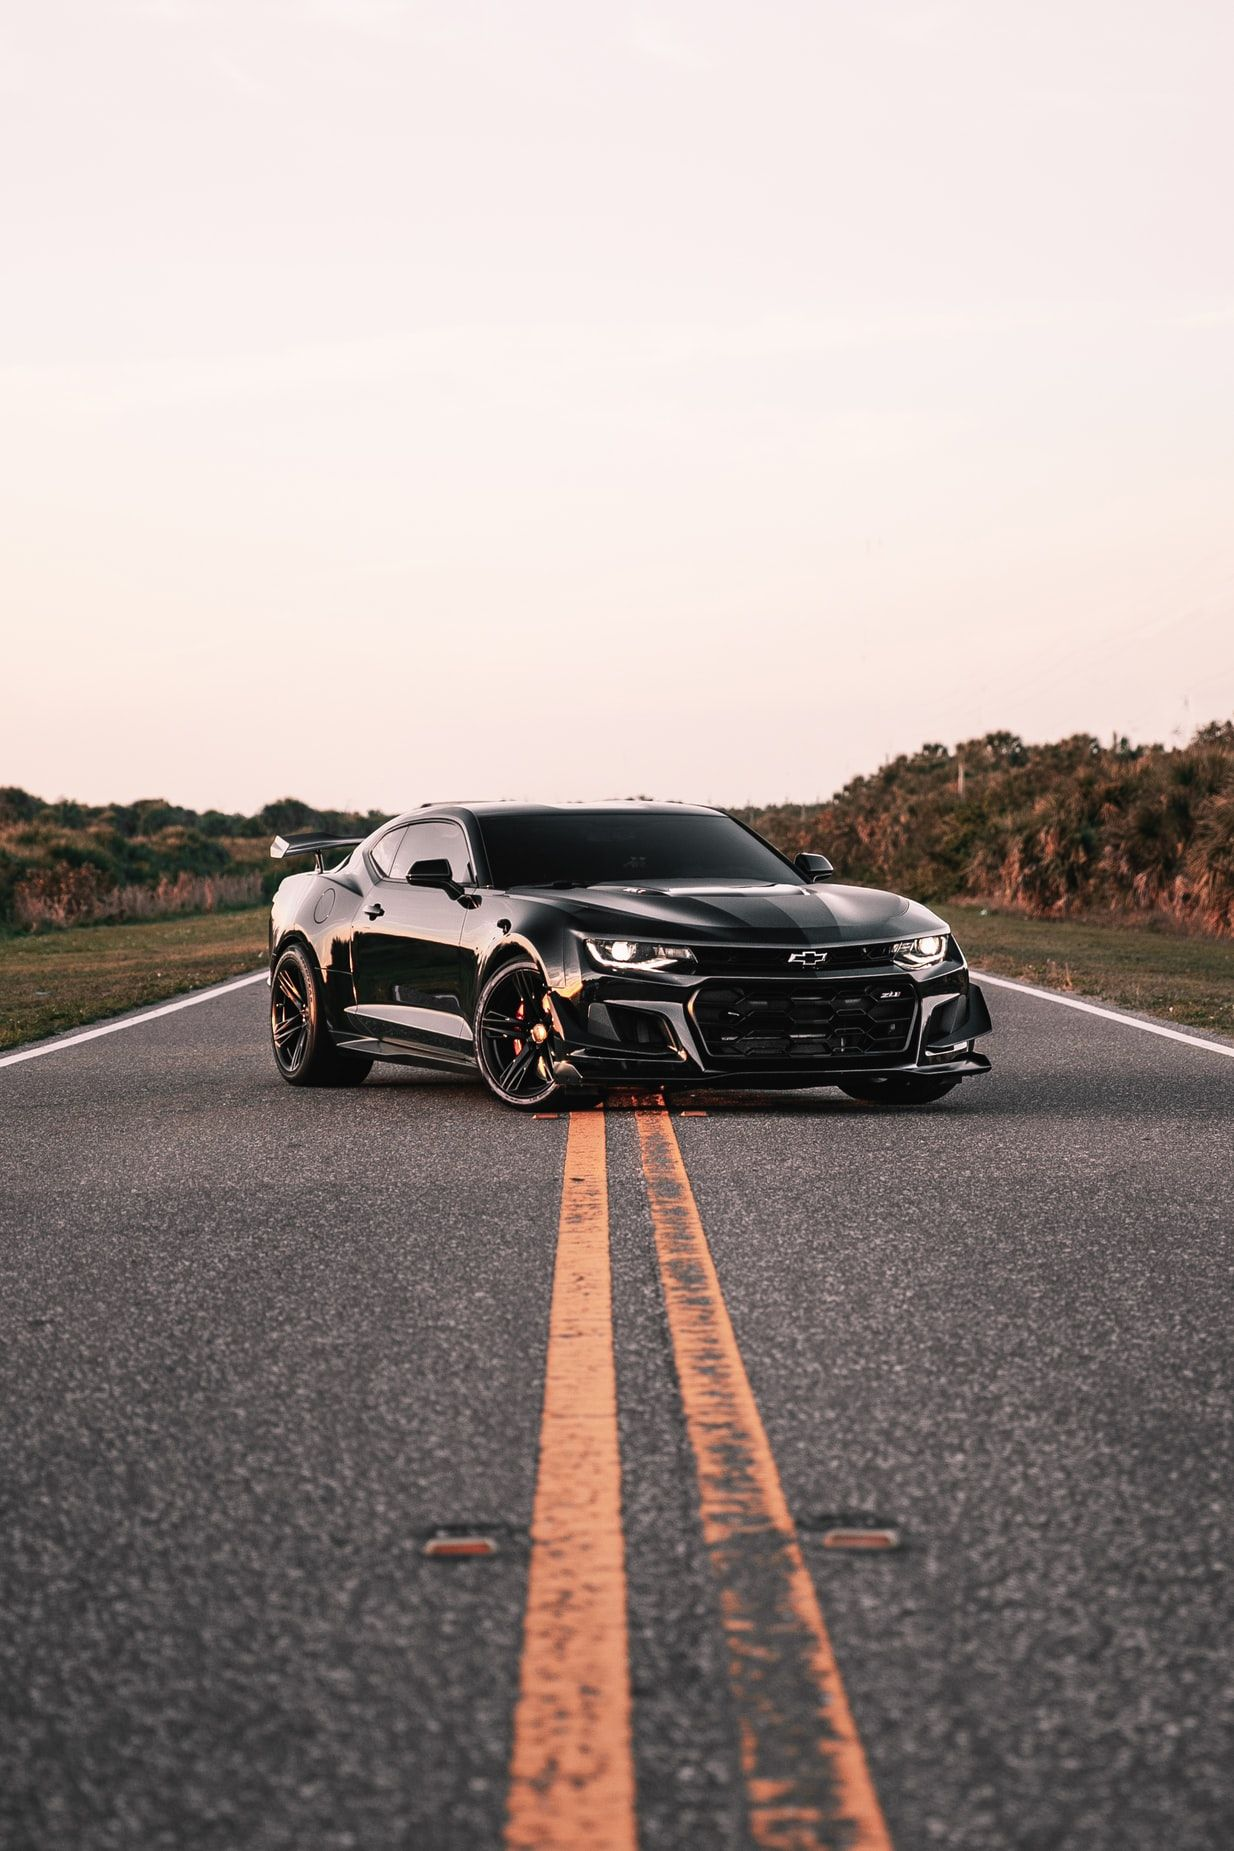 parked black coupe on road Chevrolet wallpaper, Camaro